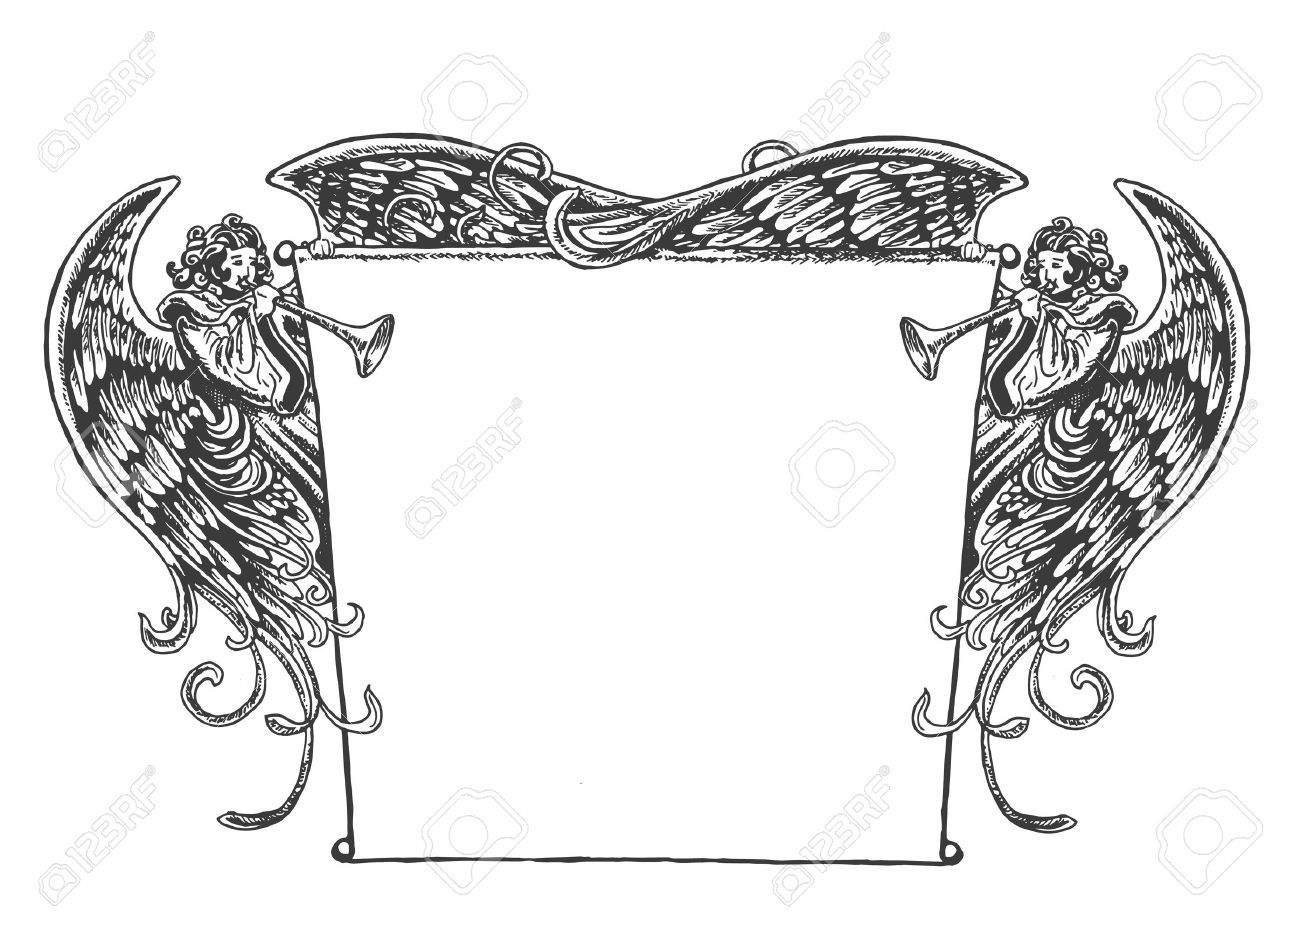 Angel Banner, Vintage Style. Old fashioned drawing of angels holding up a banner while blowing on trumpets. Style is reminiscent of woodcut or engraved period art. ,